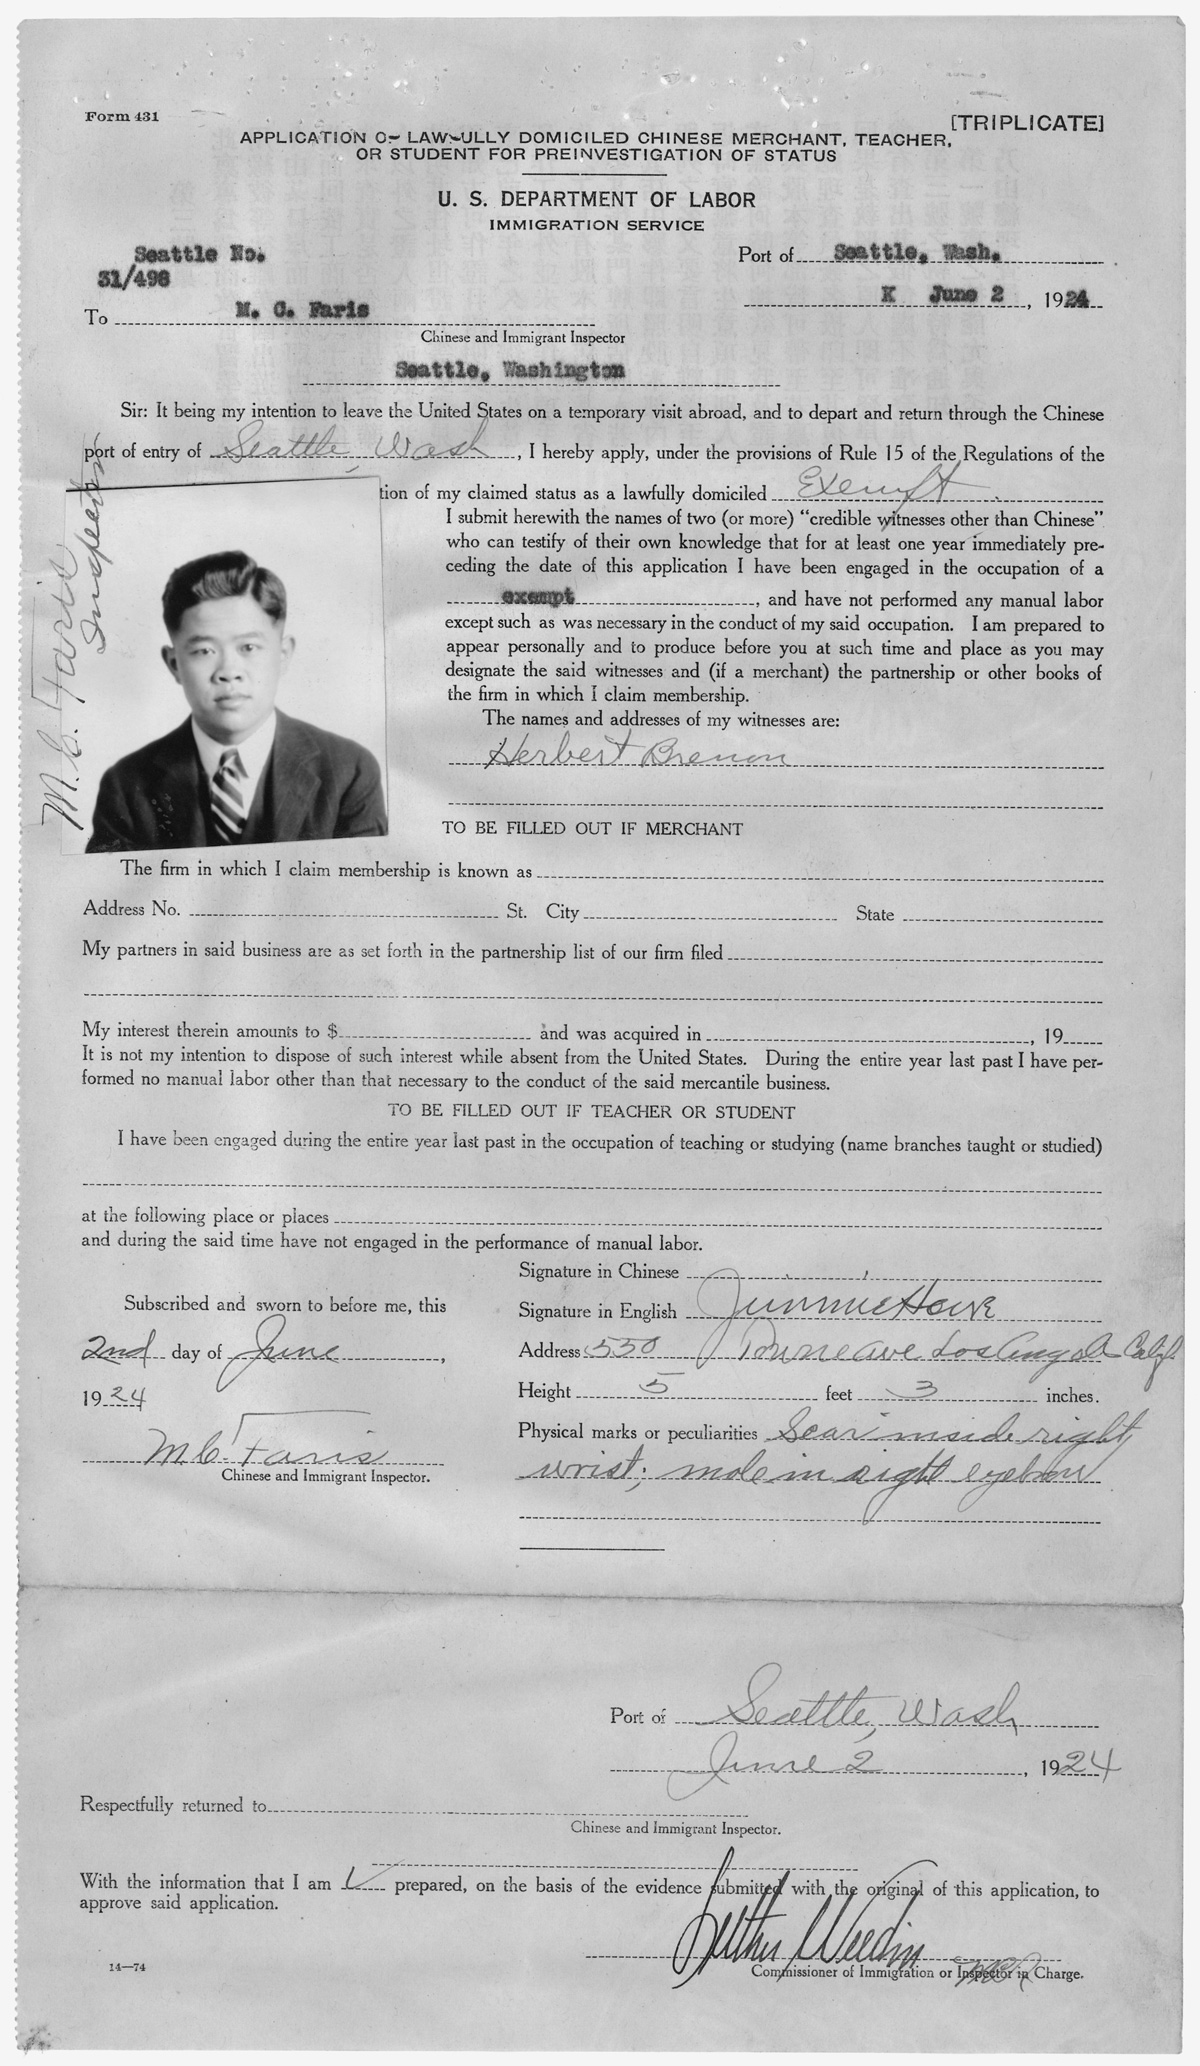 image of a an application page with a small photograph of James Wong Howe.